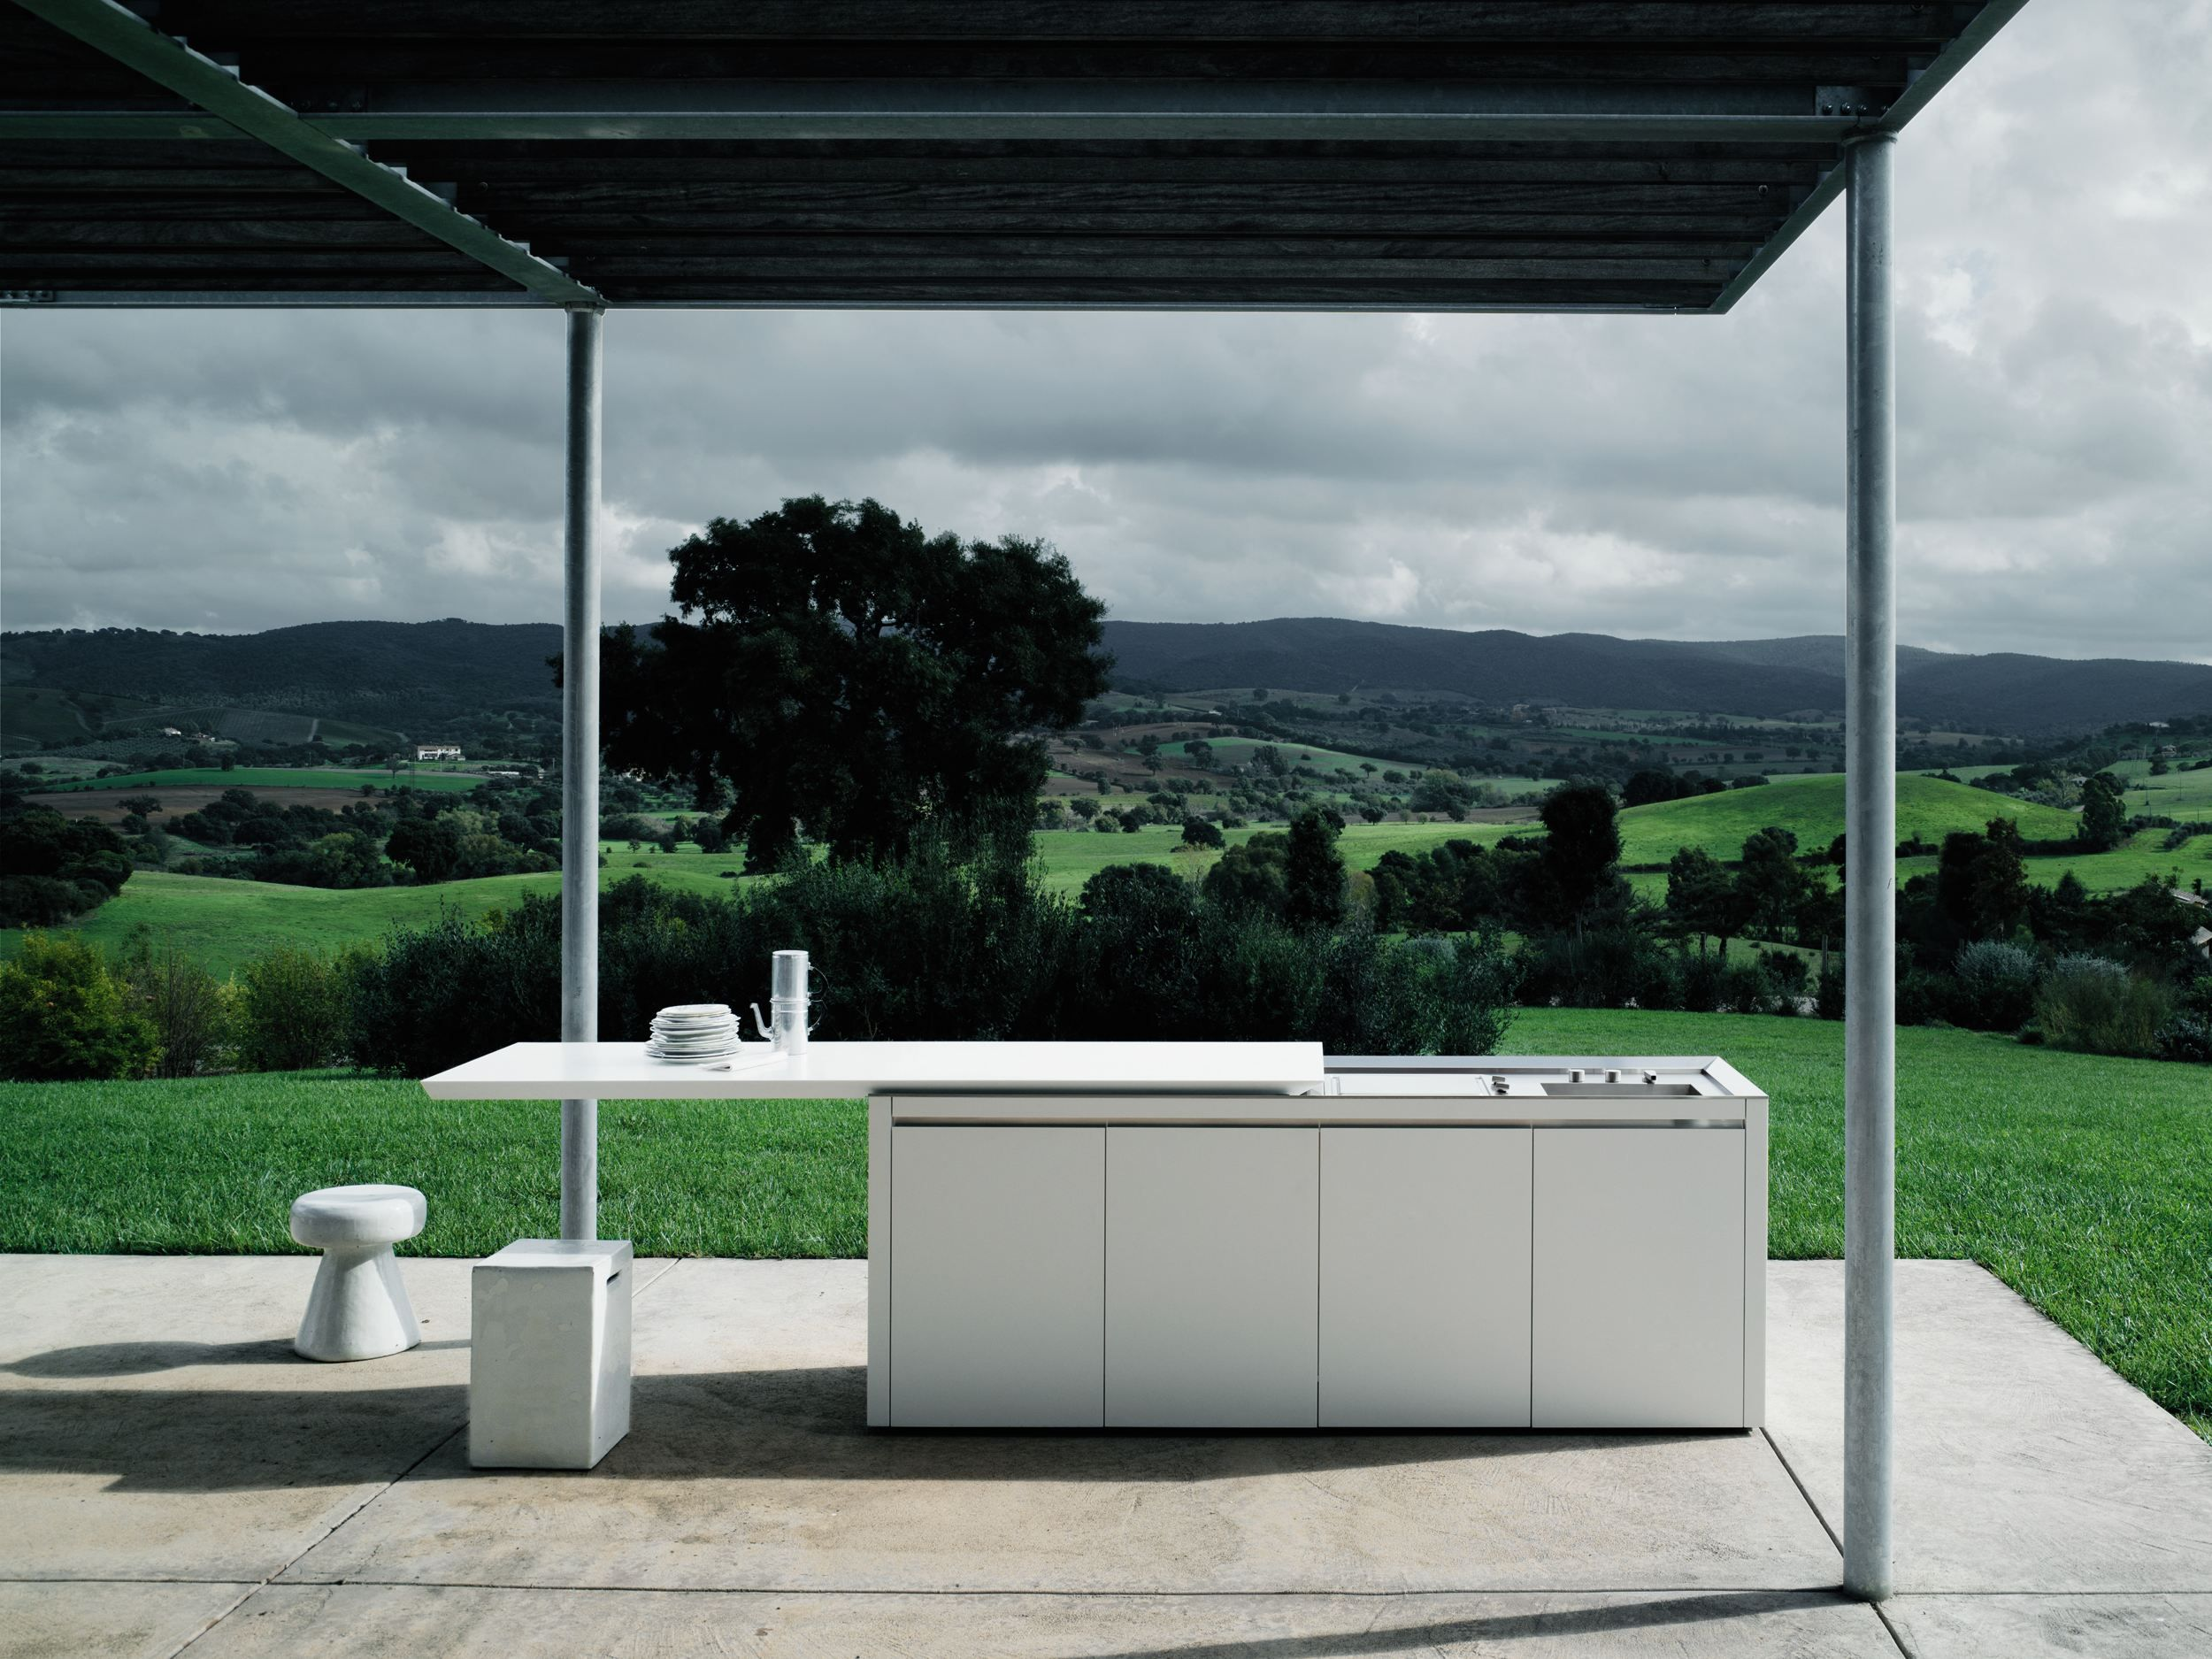 outdoorküche aus corian® k2 outdoor by boffi | design norbert, Innenarchitektur ideen